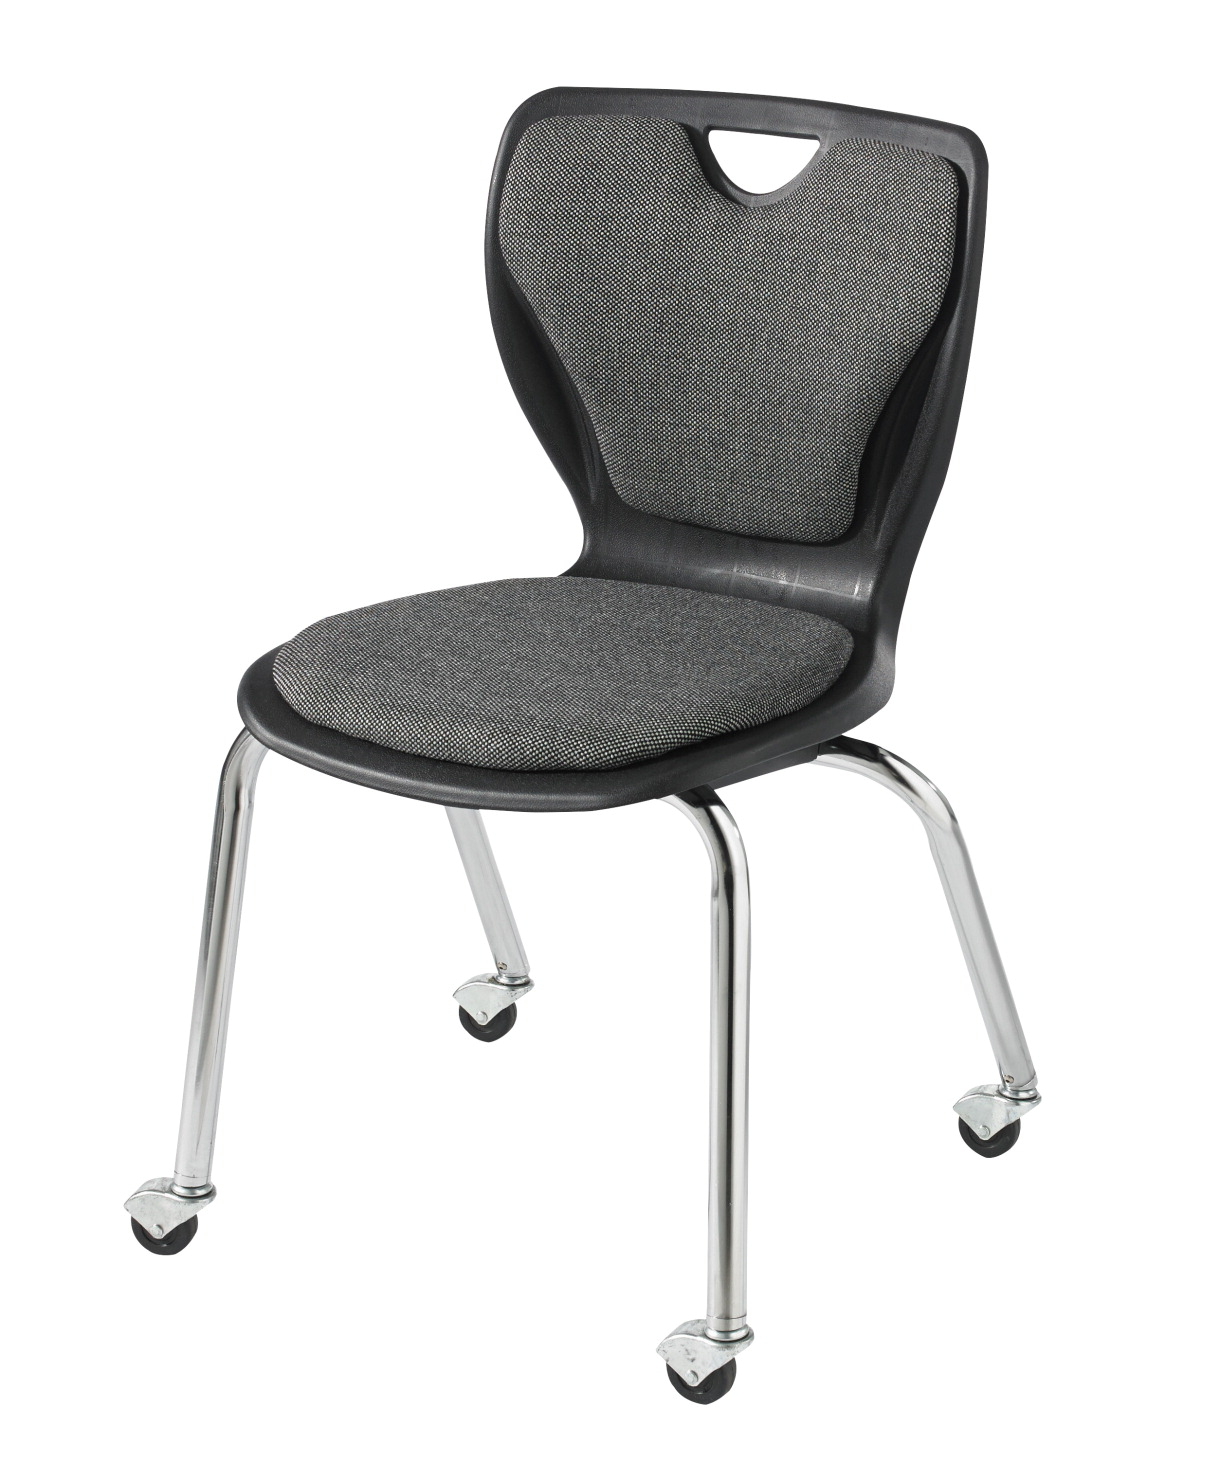 Modern Classroom Chairs ~ Teachers chair school specialty marketplace